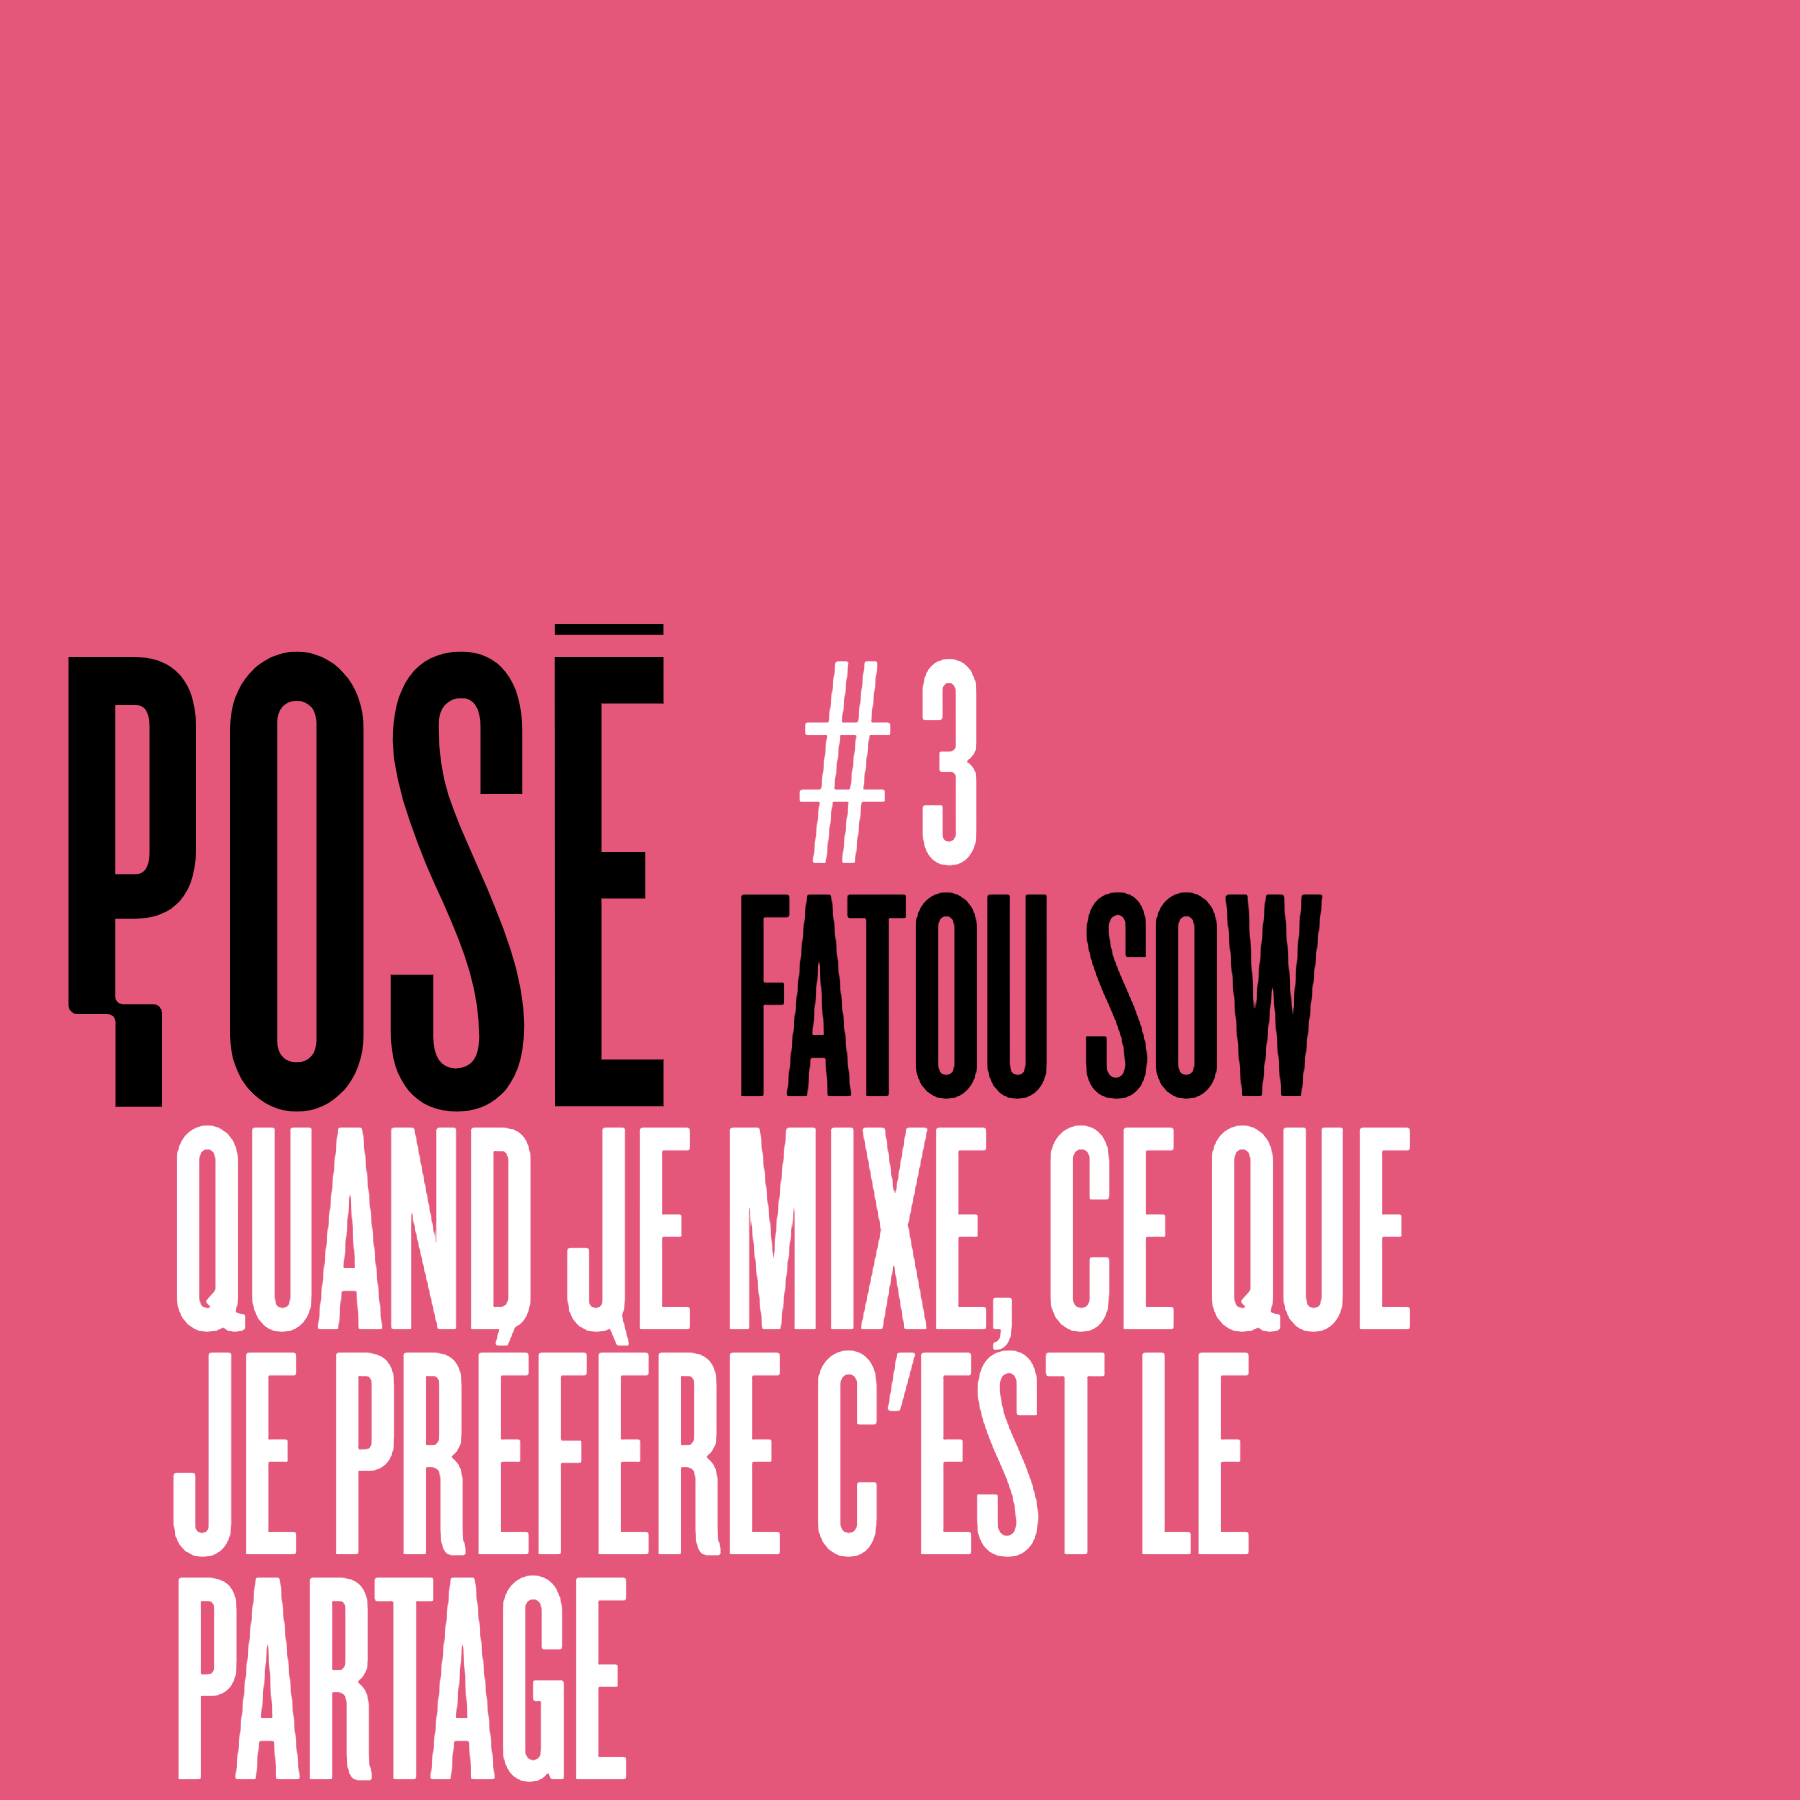 Pose cover Fatou sow